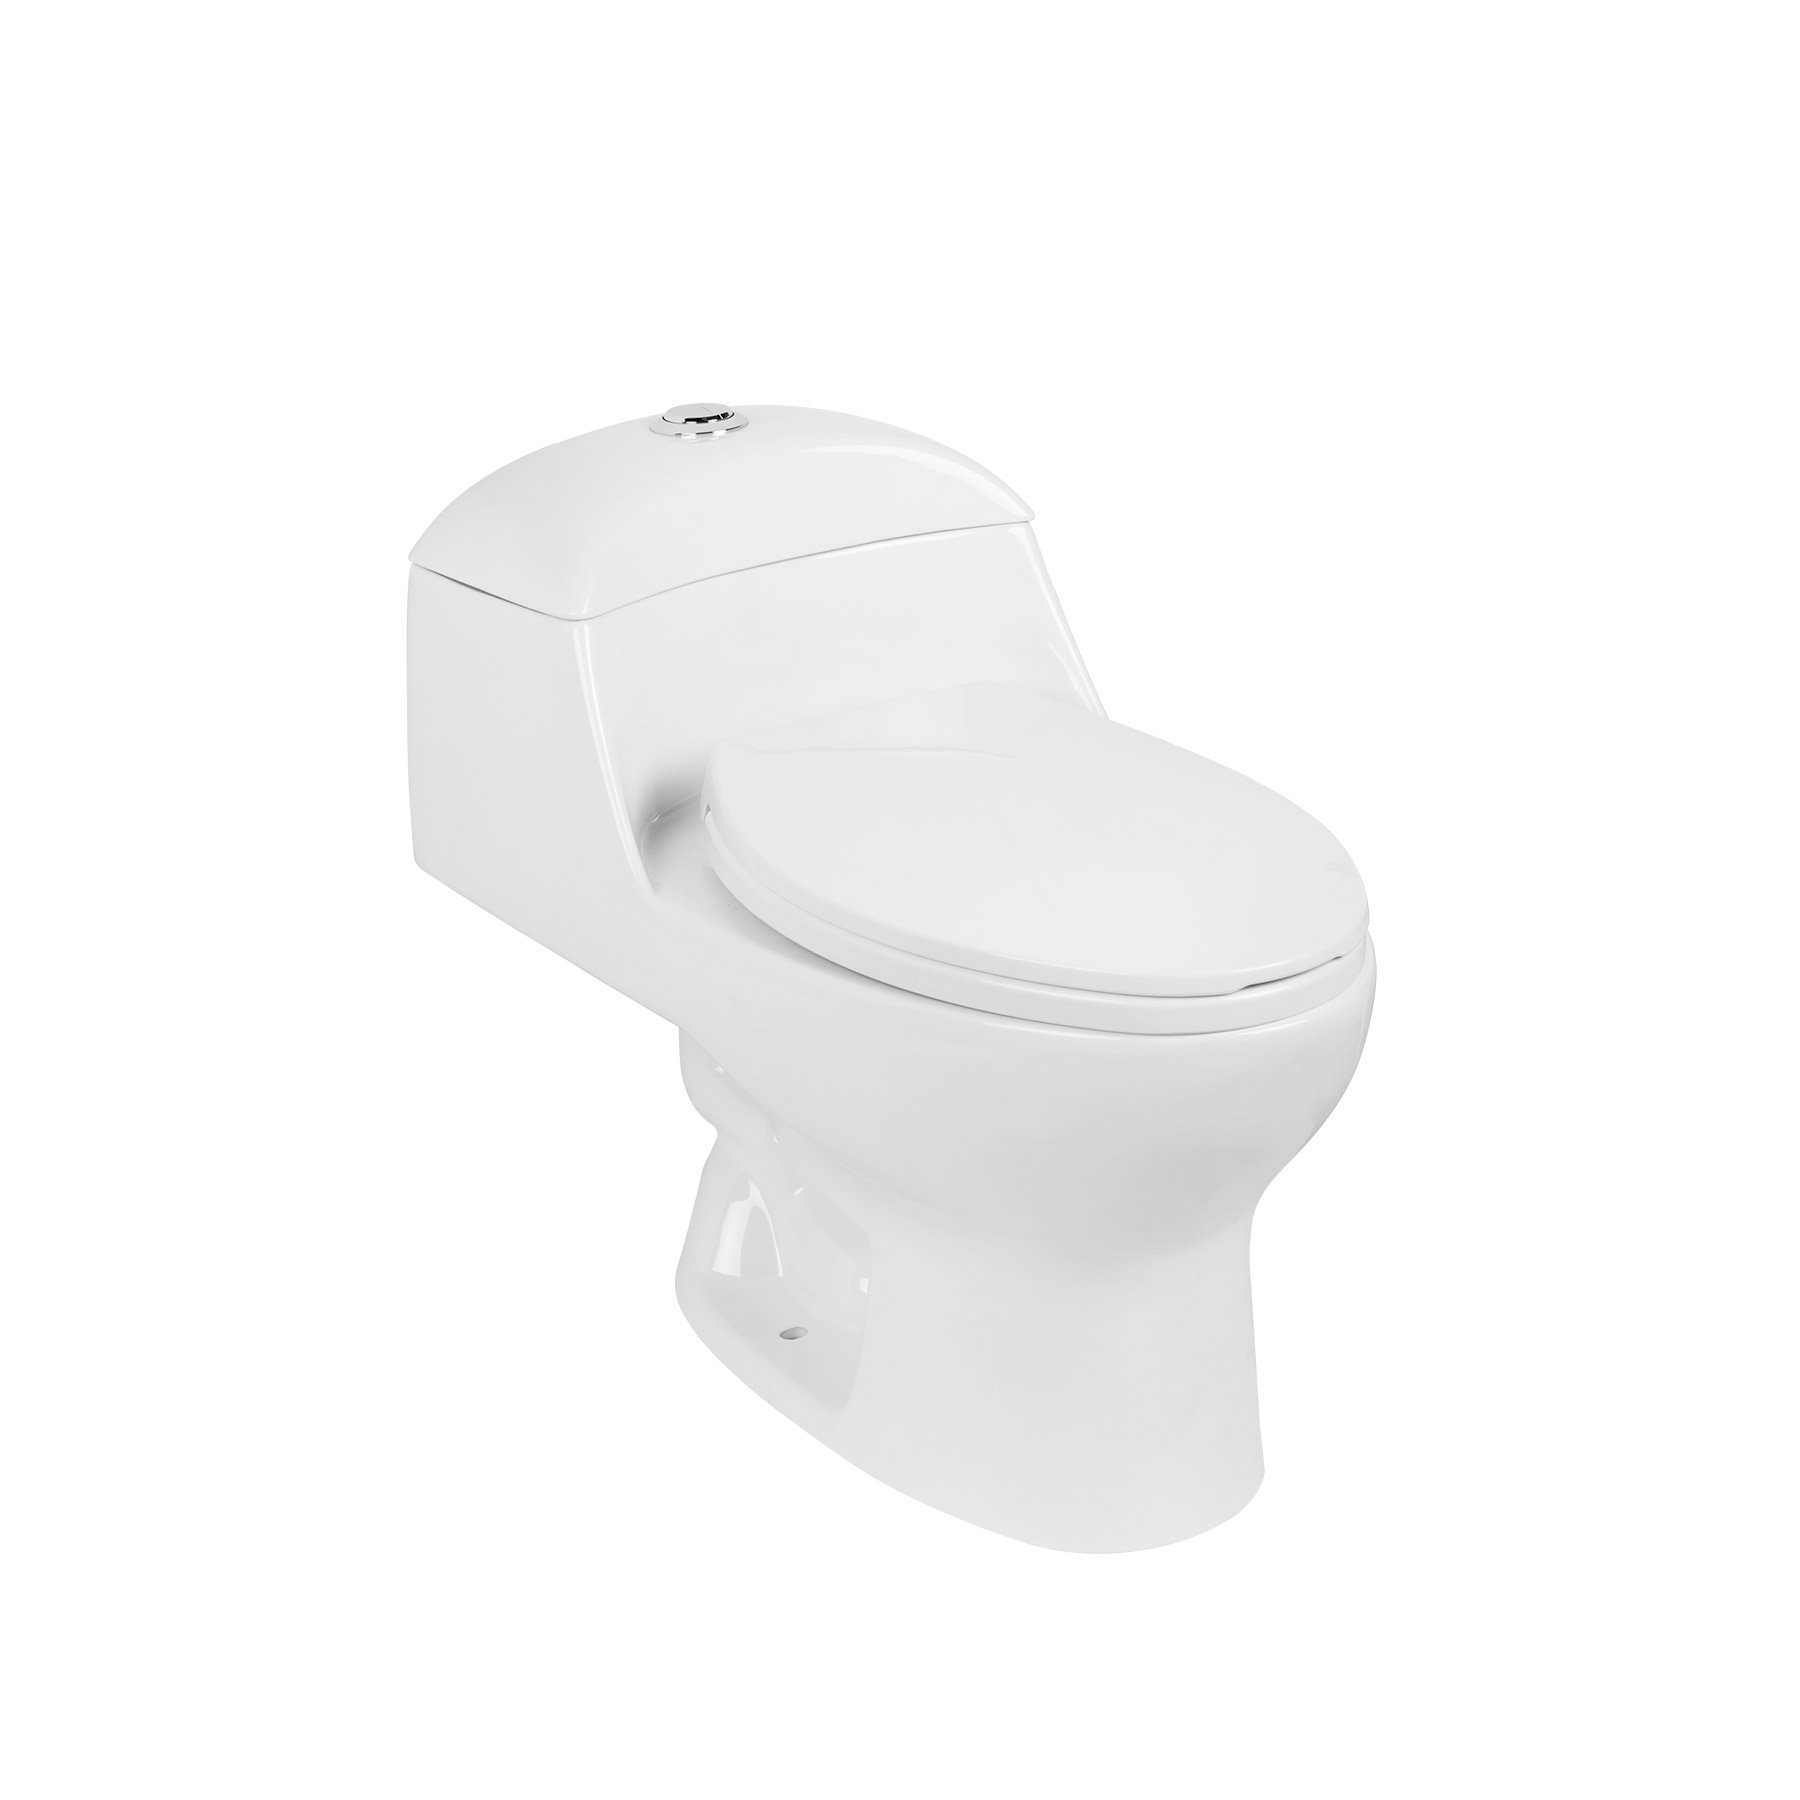 MAYKKE Caspian One-Piece Toilet with Elongated Seat | Dual Flush Siphonic Jets 1.6 GPF and 12'' Rough In | Low Tank for a Modern, Compact Profile | High Efficiency, Low Consumption | White JXA1000101